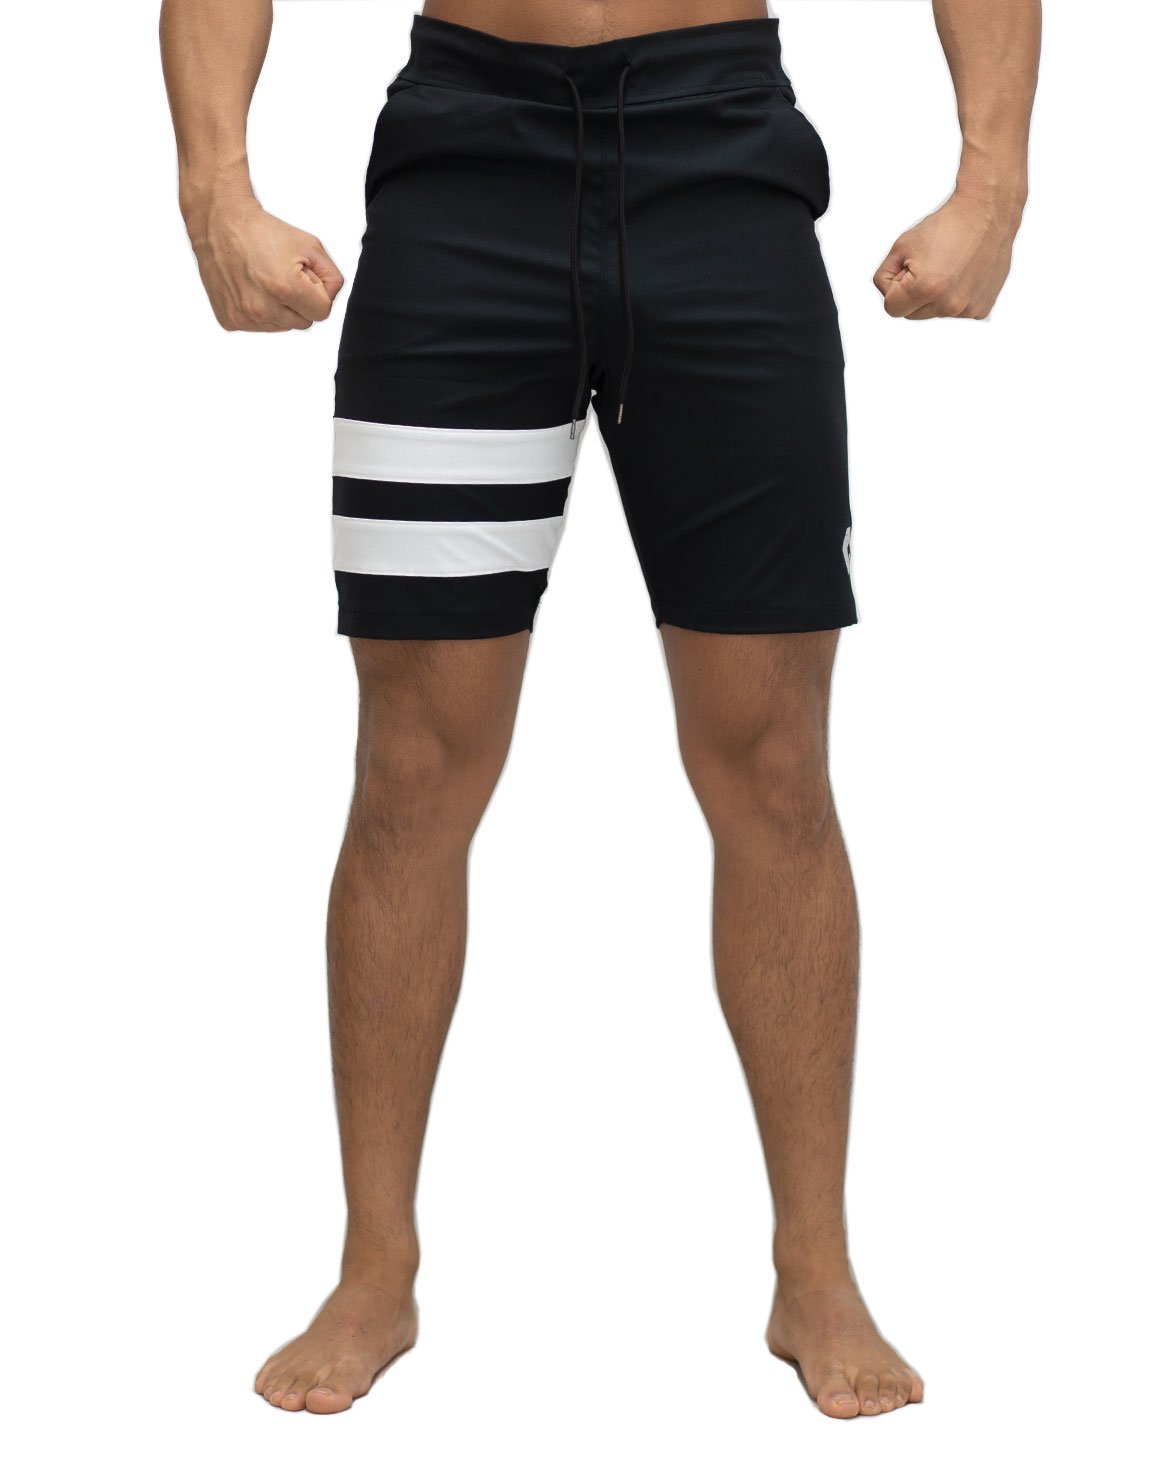 <img class='new_mark_img1' src='https://img.shop-pro.jp/img/new/icons1.gif' style='border:none;display:inline;margin:0px;padding:0px;width:auto;' />CRONOS TIGHT BOARD SHORTS BLACK